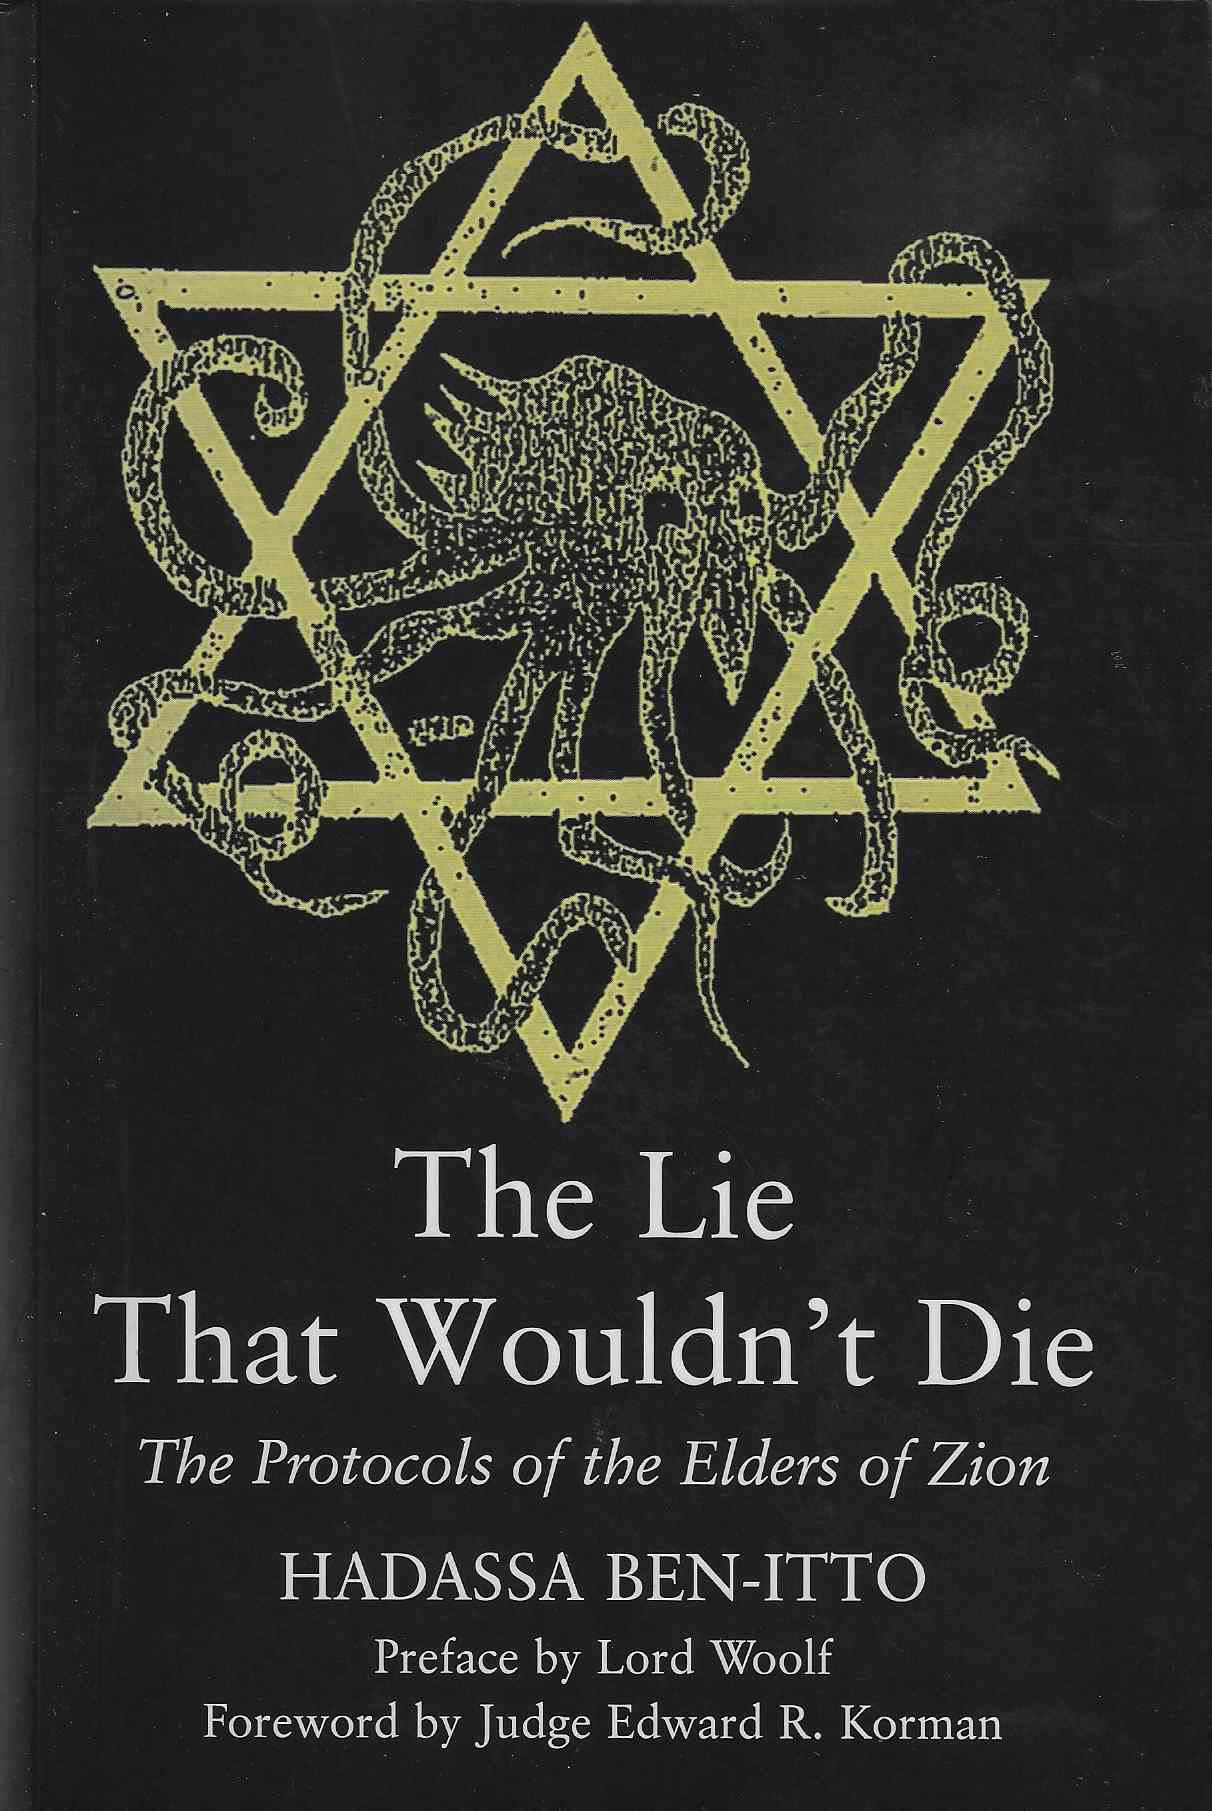 Image for The Lie That Wouldn't Die The Protocols of the Elders of Zion